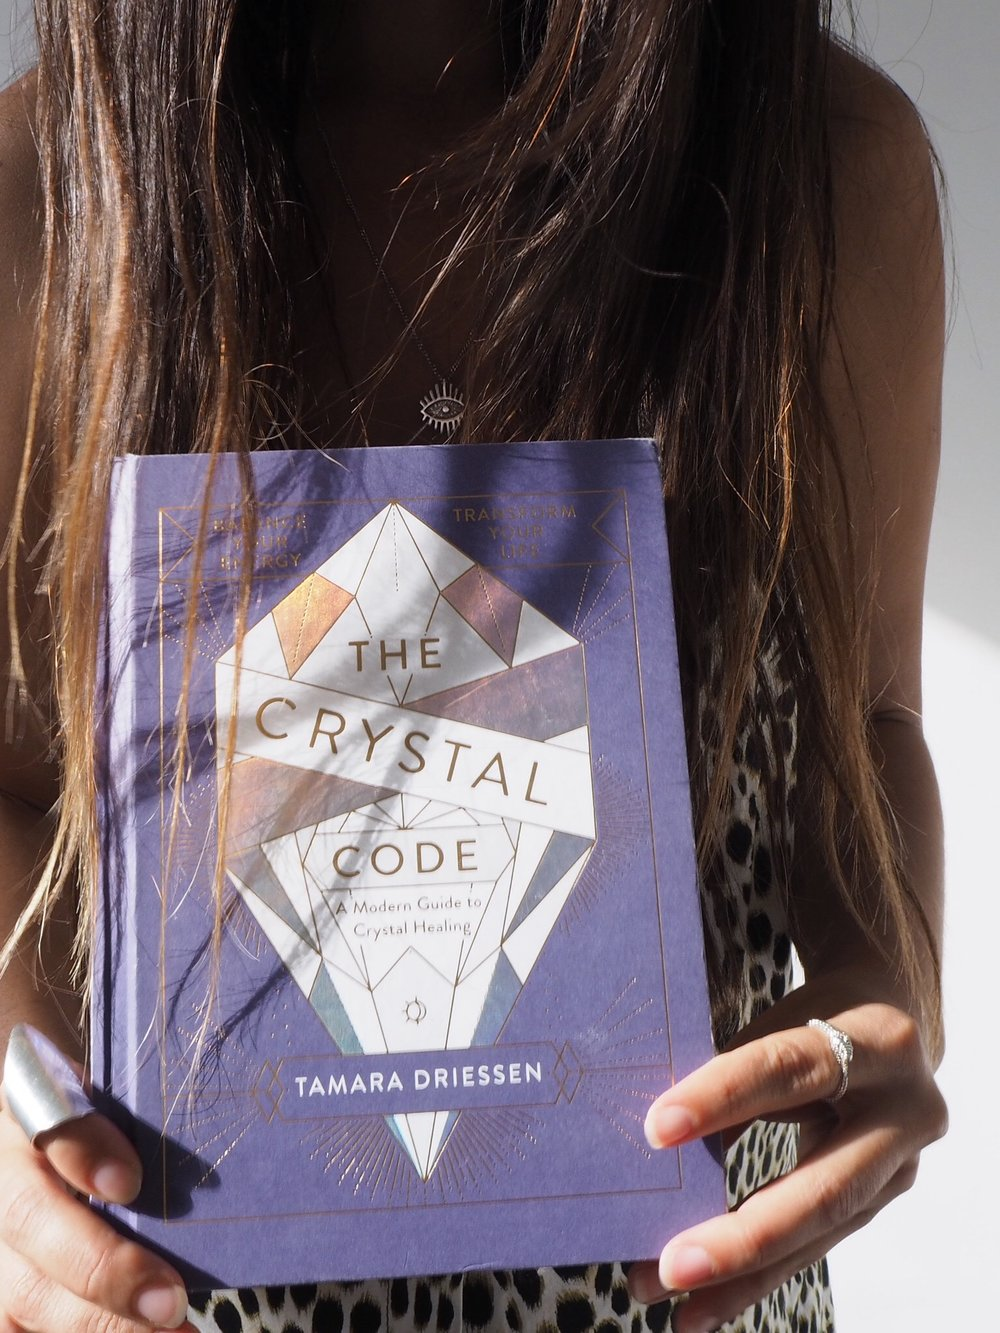 available to preorder now - A modern guide to crystal healing; including 70 unique beauties that want to rock your world. Dust off your crystals and transform your life with a little help from The Crystal Code.Release date: 25th October, 2018.